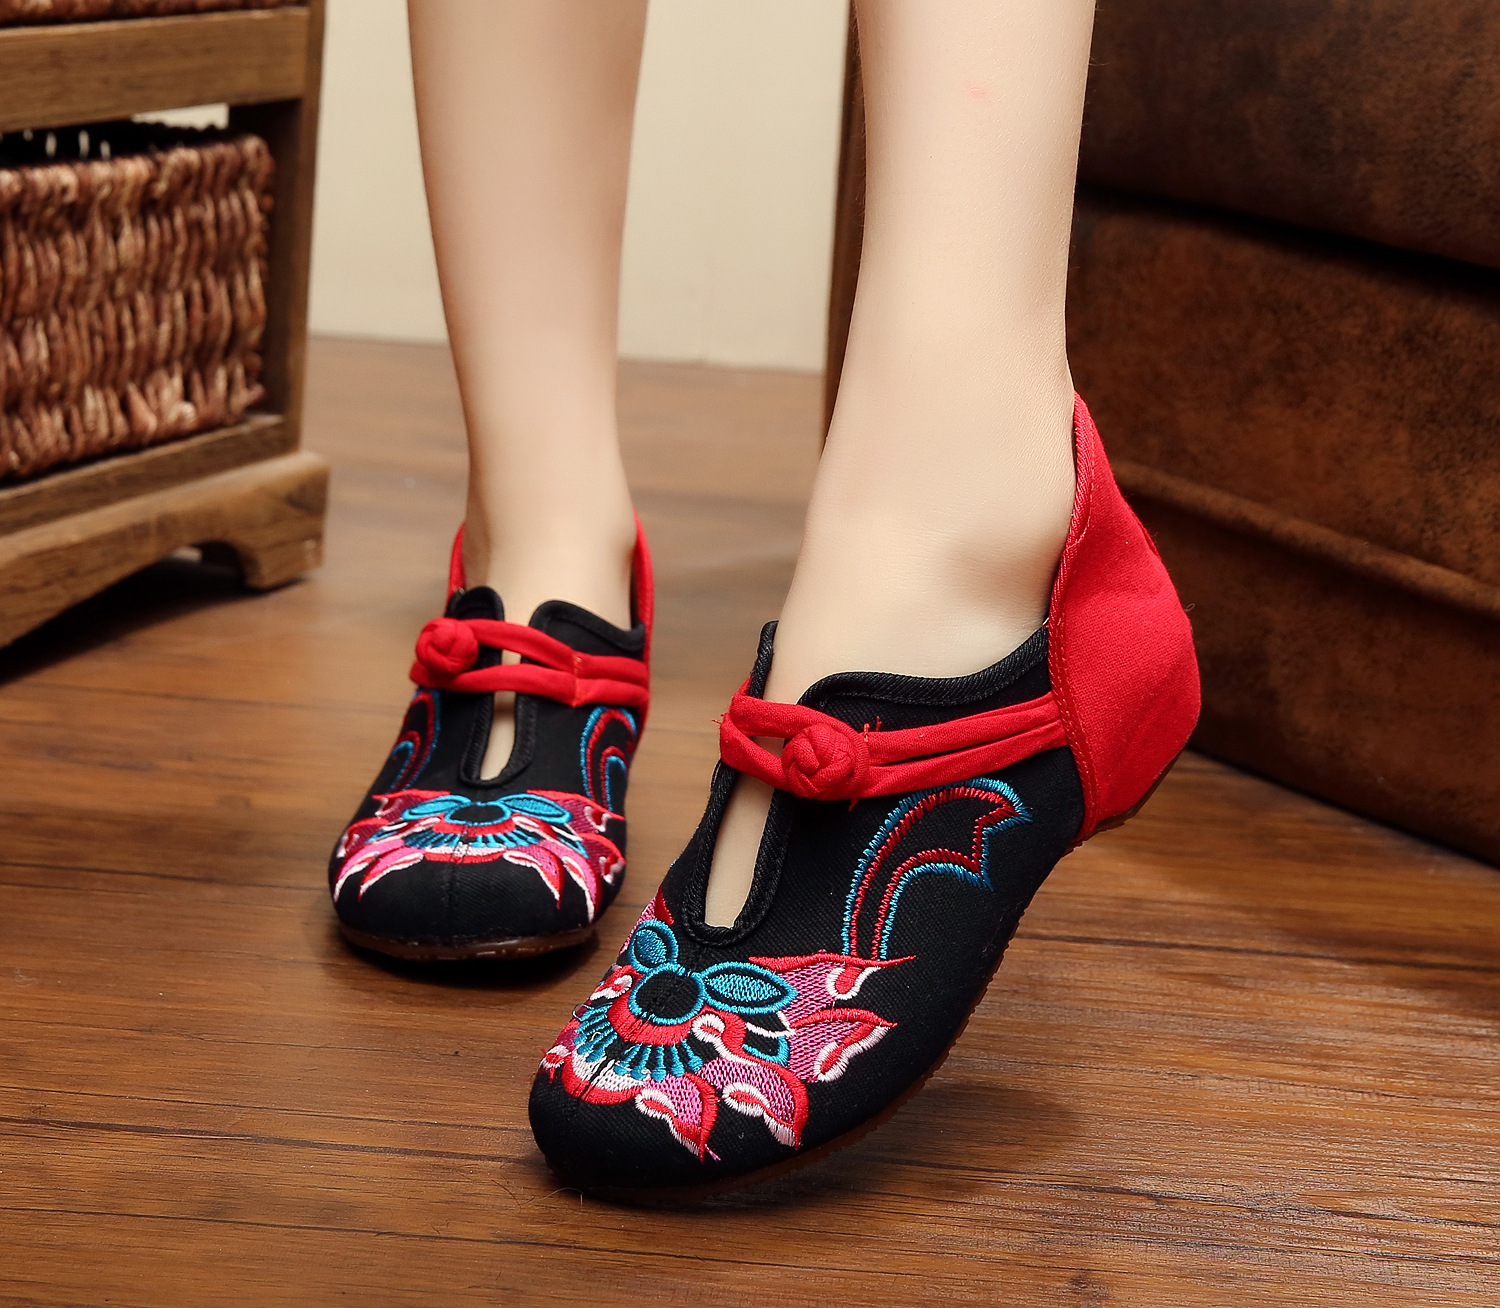 Chinese Style Embroidered Cloth Shoes Woman Shoes Spring Fashion Flat Shoes Women Latin Dancing Shoe For Women Slip On Oxford